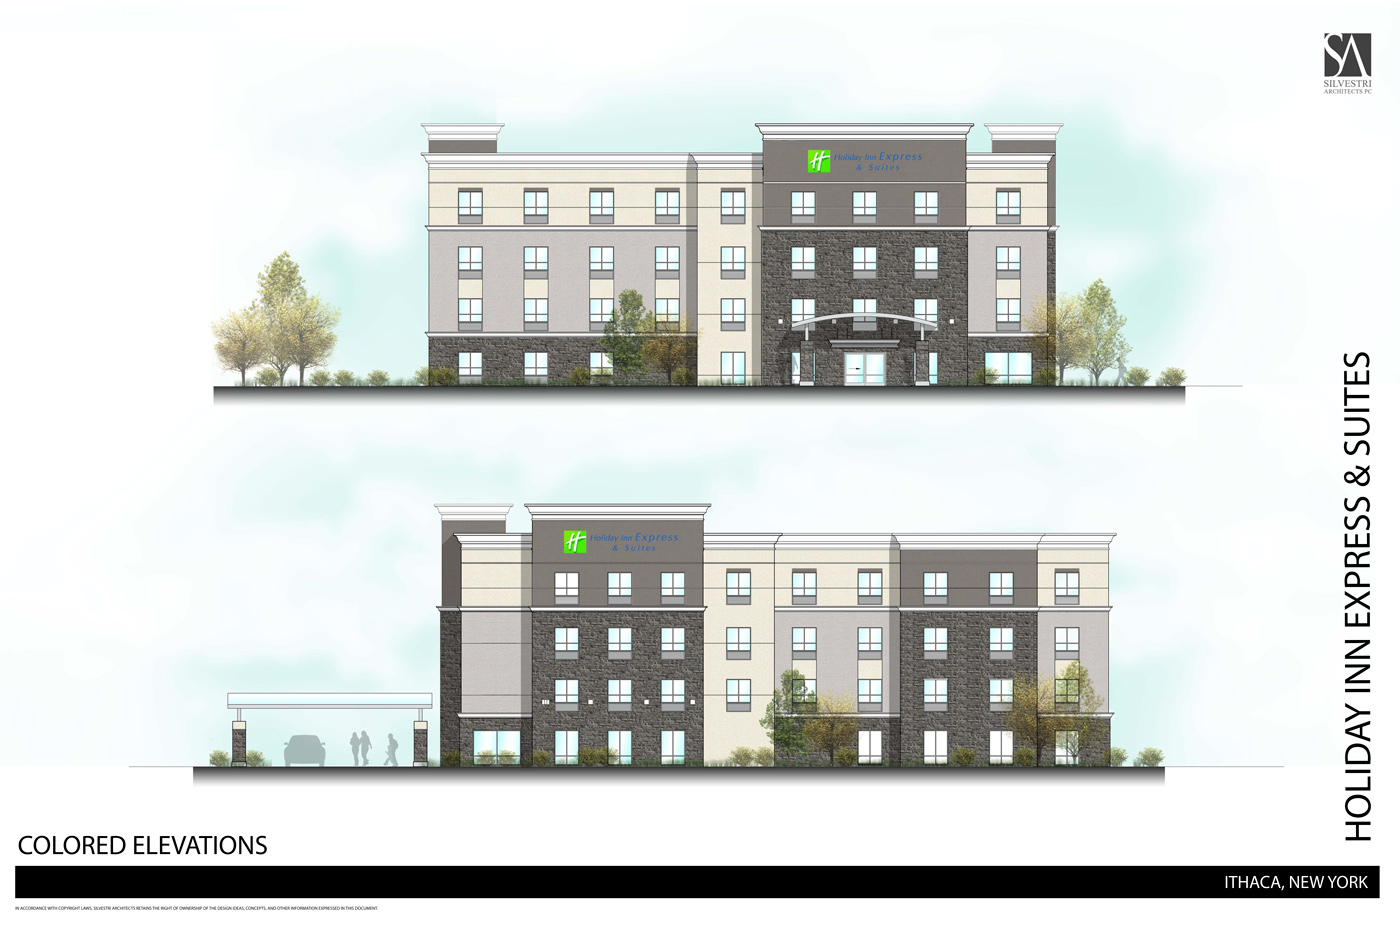 Elmira-Road-371---4-Story-Hotel---A-201---Revised-Rendering---02-21-14